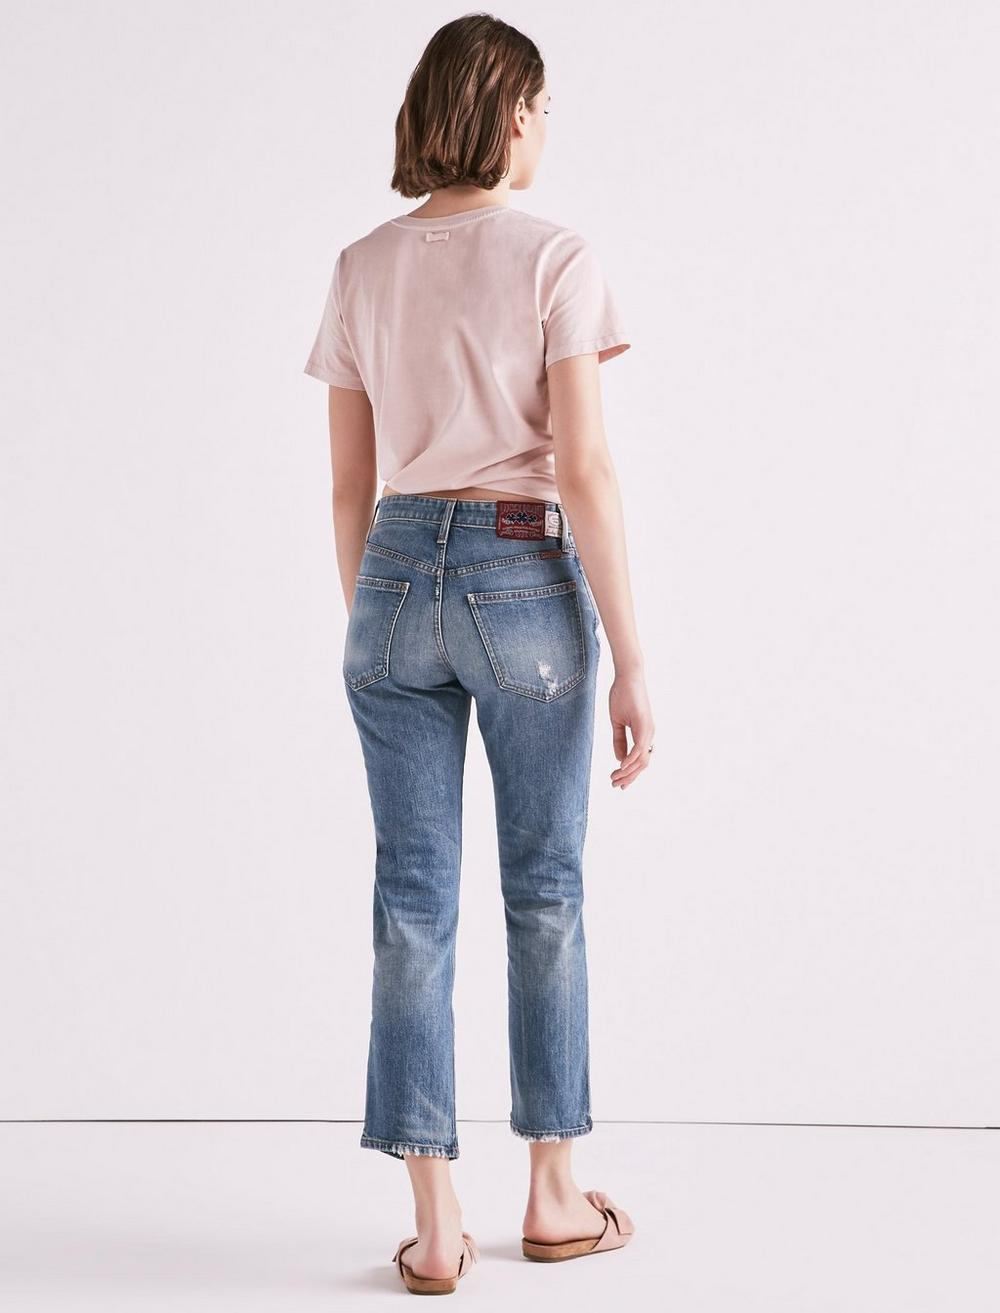 MADE IN L.A. LUCKY PINS HIGH RISE JEAN IN WILKINS, image 3